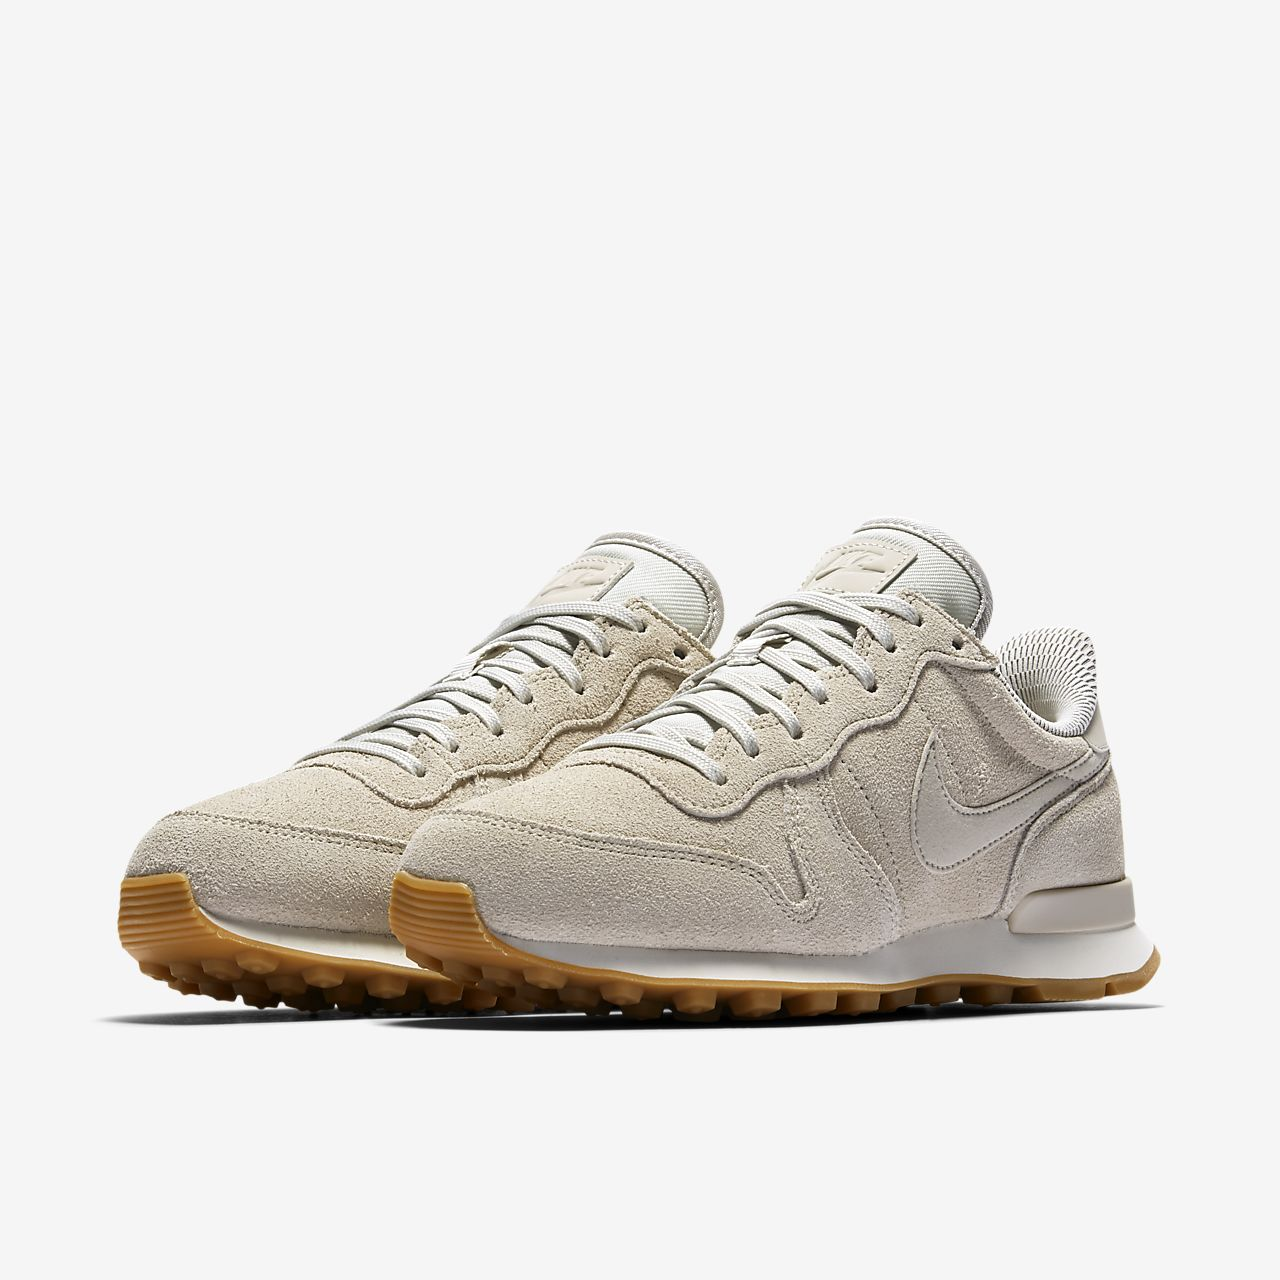 Nike Internationalist SE - 6280U